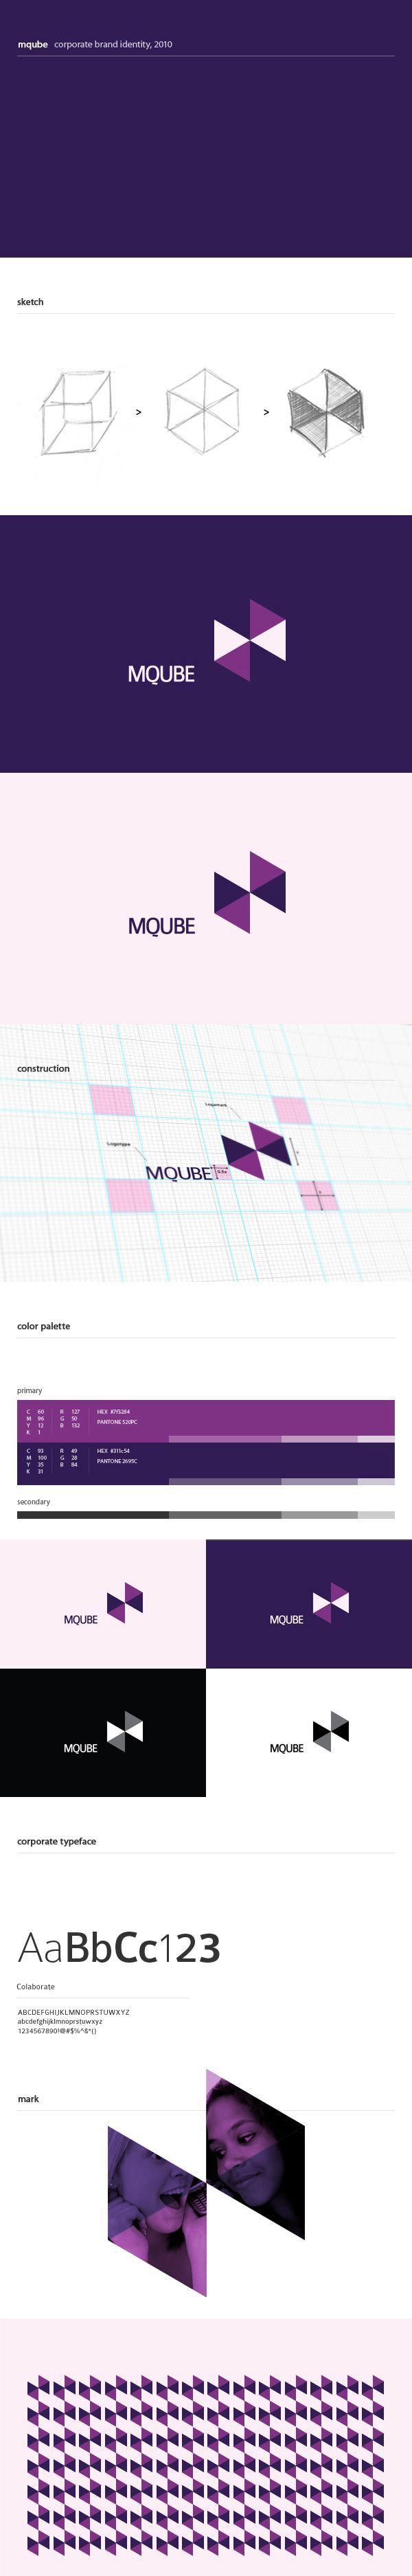 Logo design for mqube